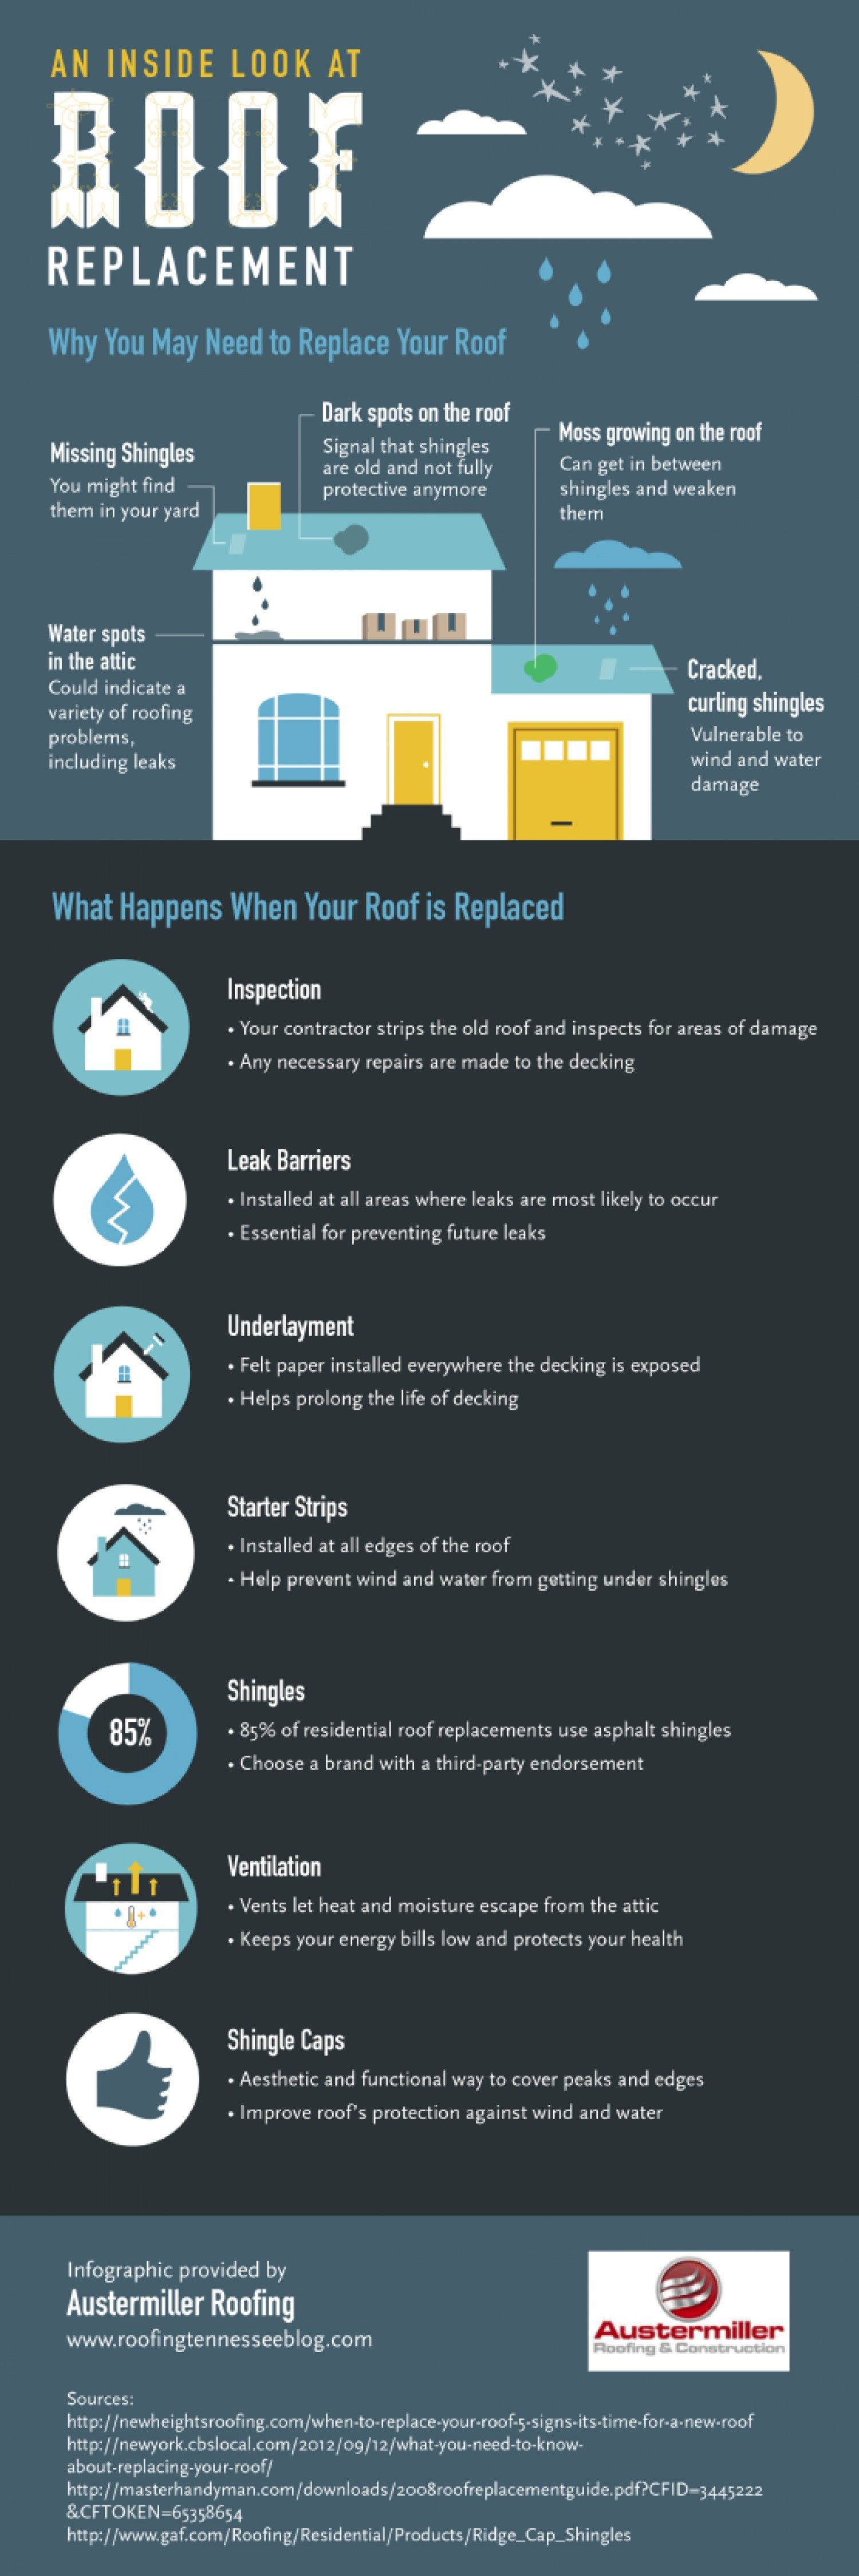 An Inside Look at Roof Replacement Infographic Roofing